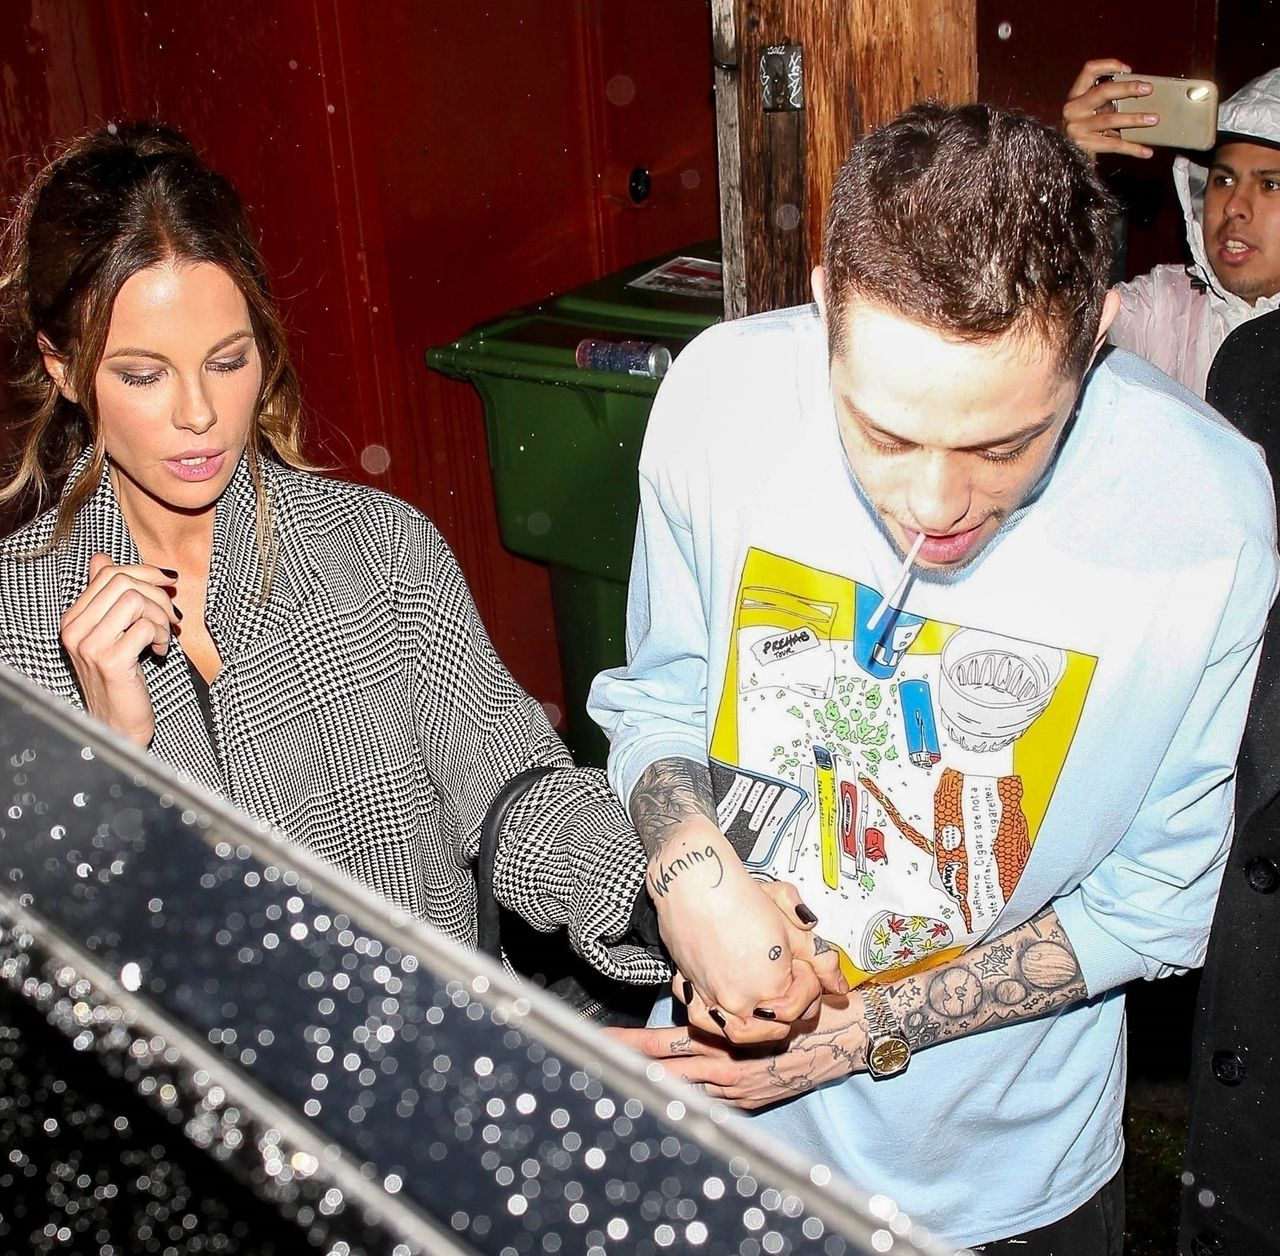 Pete Davidson and Kate Beckinsale show off their new romance while exiting Largo at the Coronet Pete Davidson, Kate Beckinsale